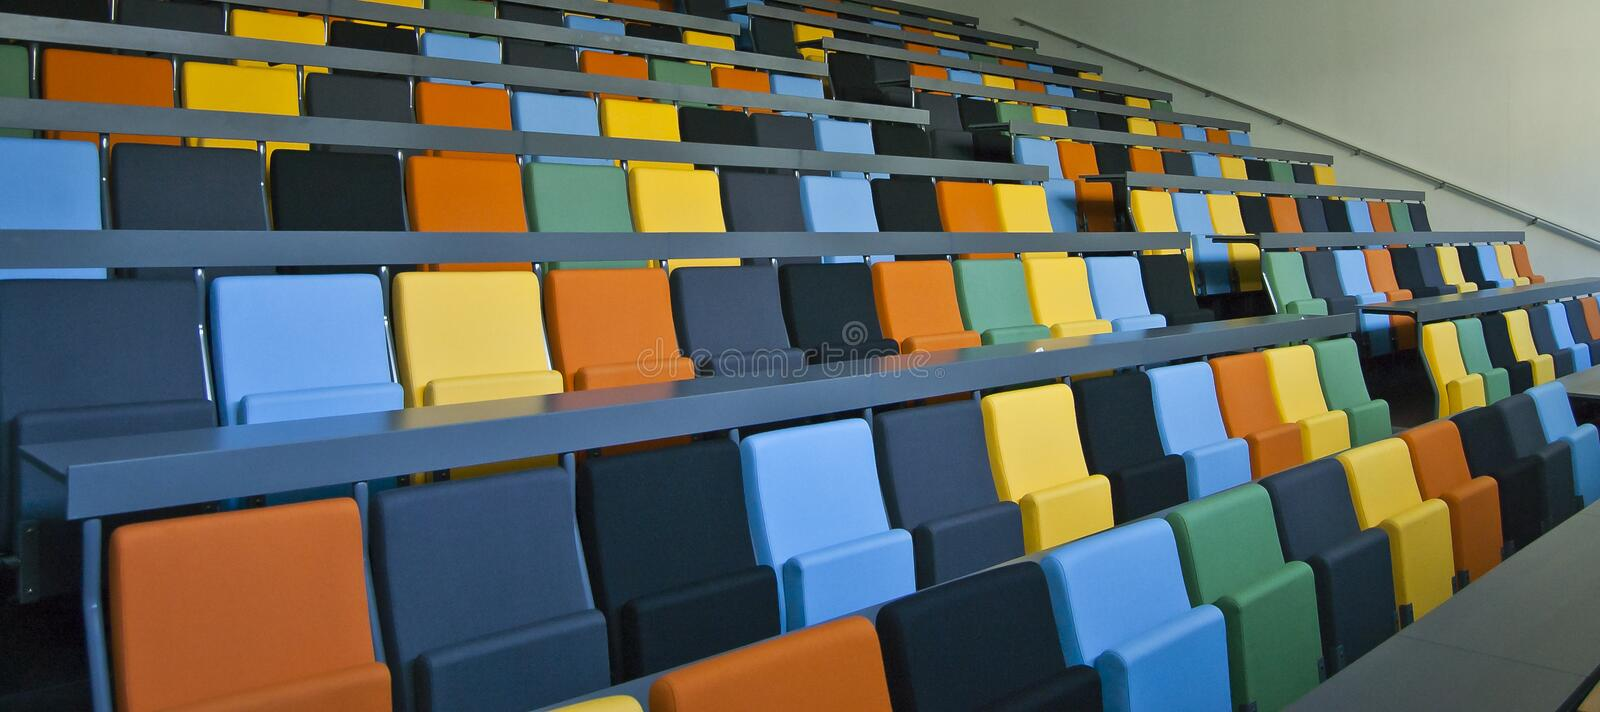 Colored seats. Seats in different colors in a danish auditorium stock photos